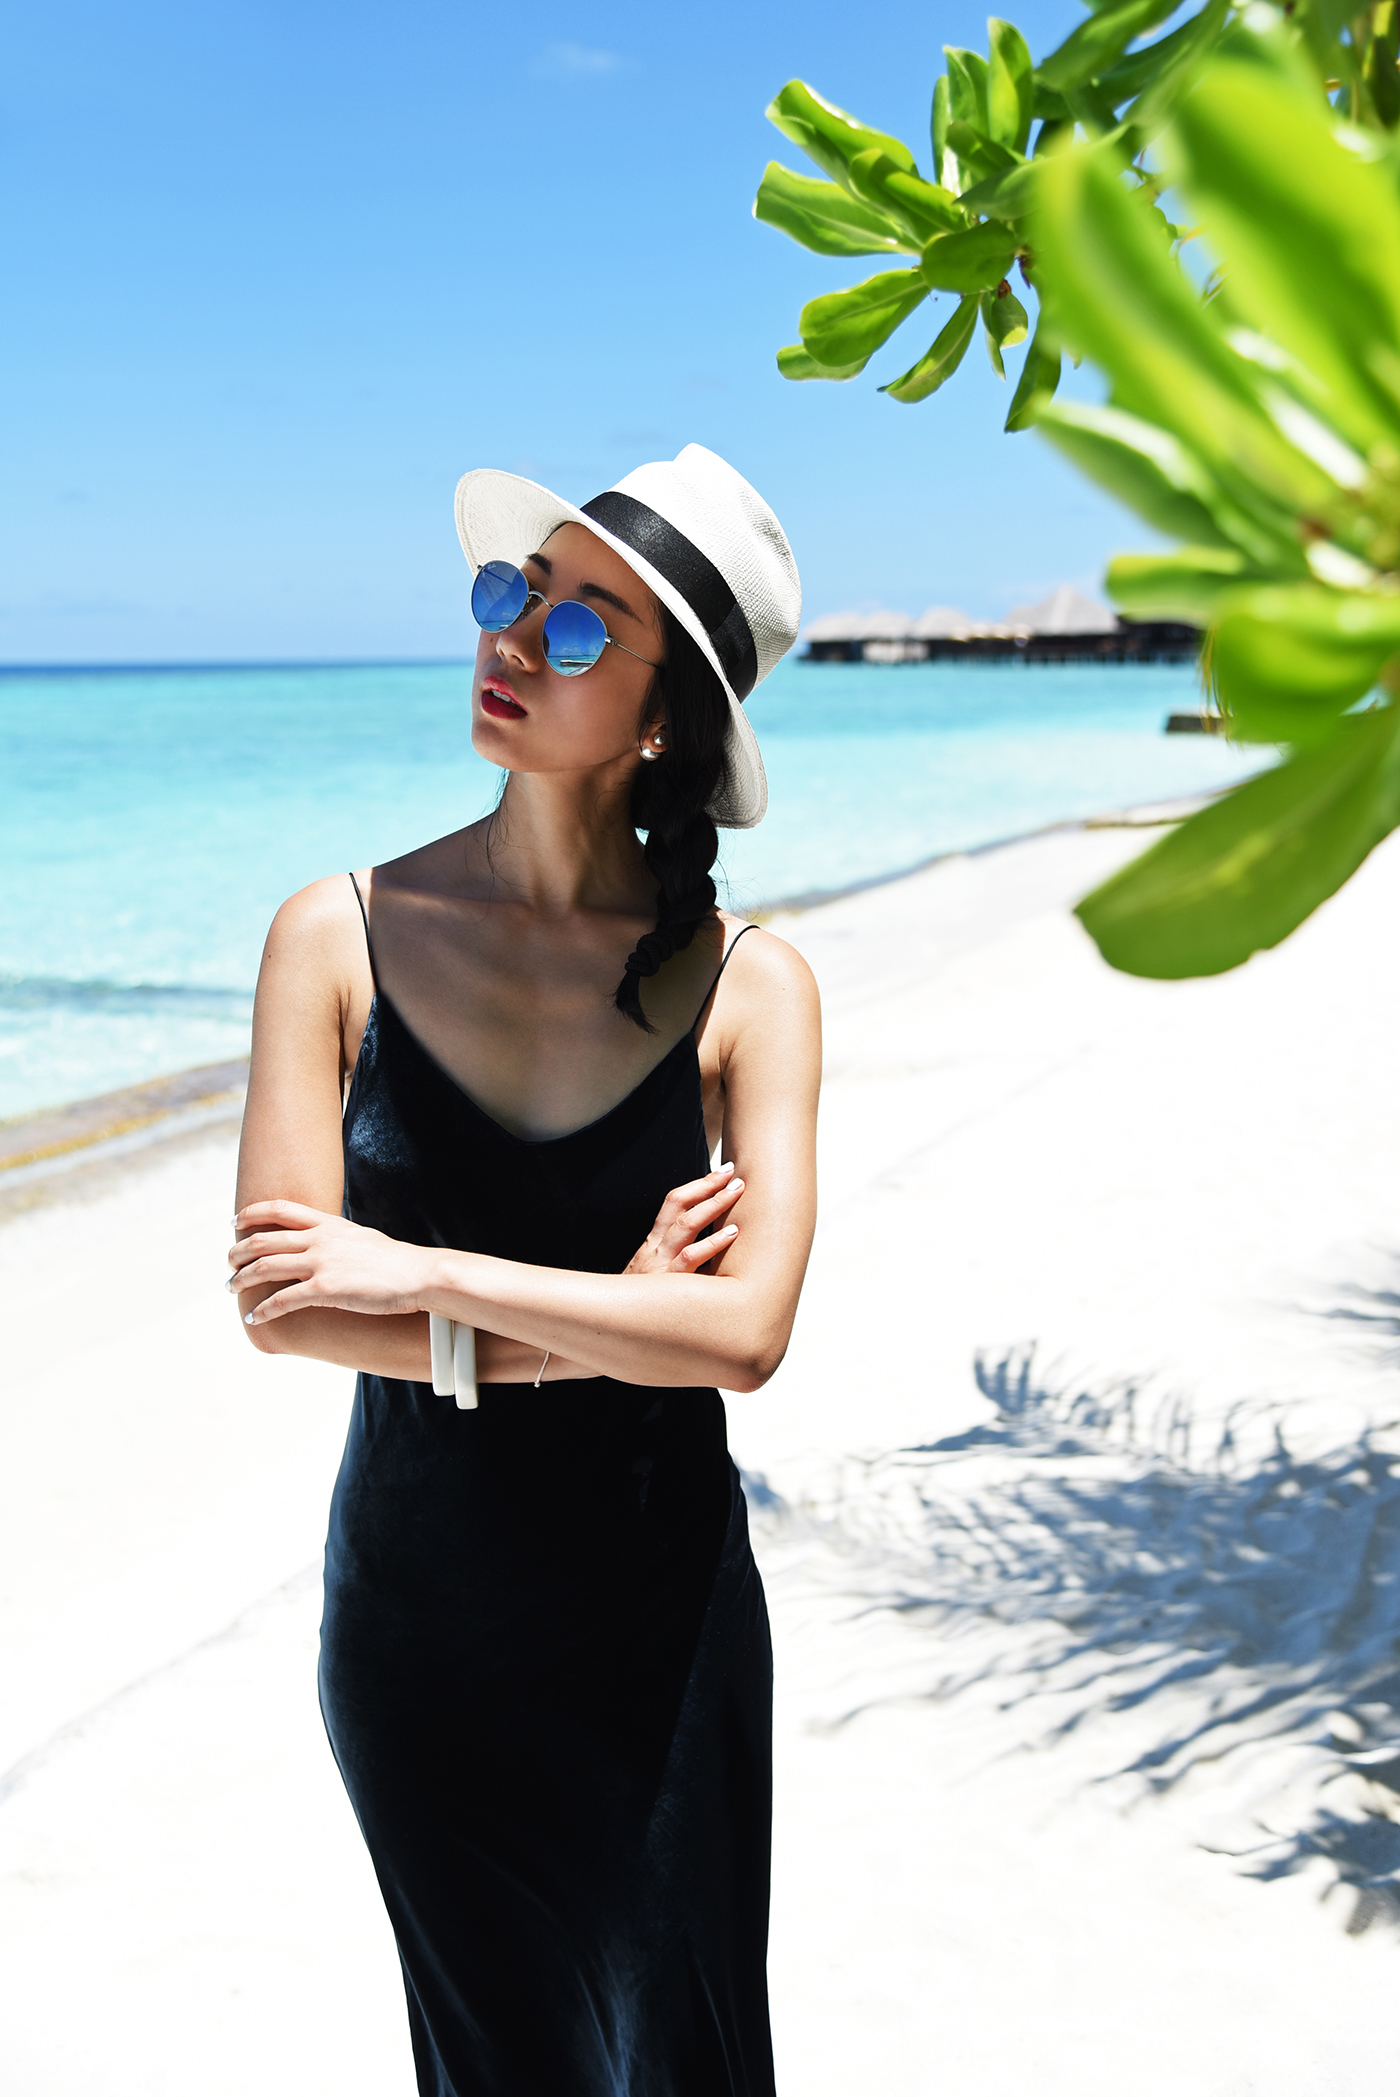 JCrew-Maldives-Cynthia-Lo-7